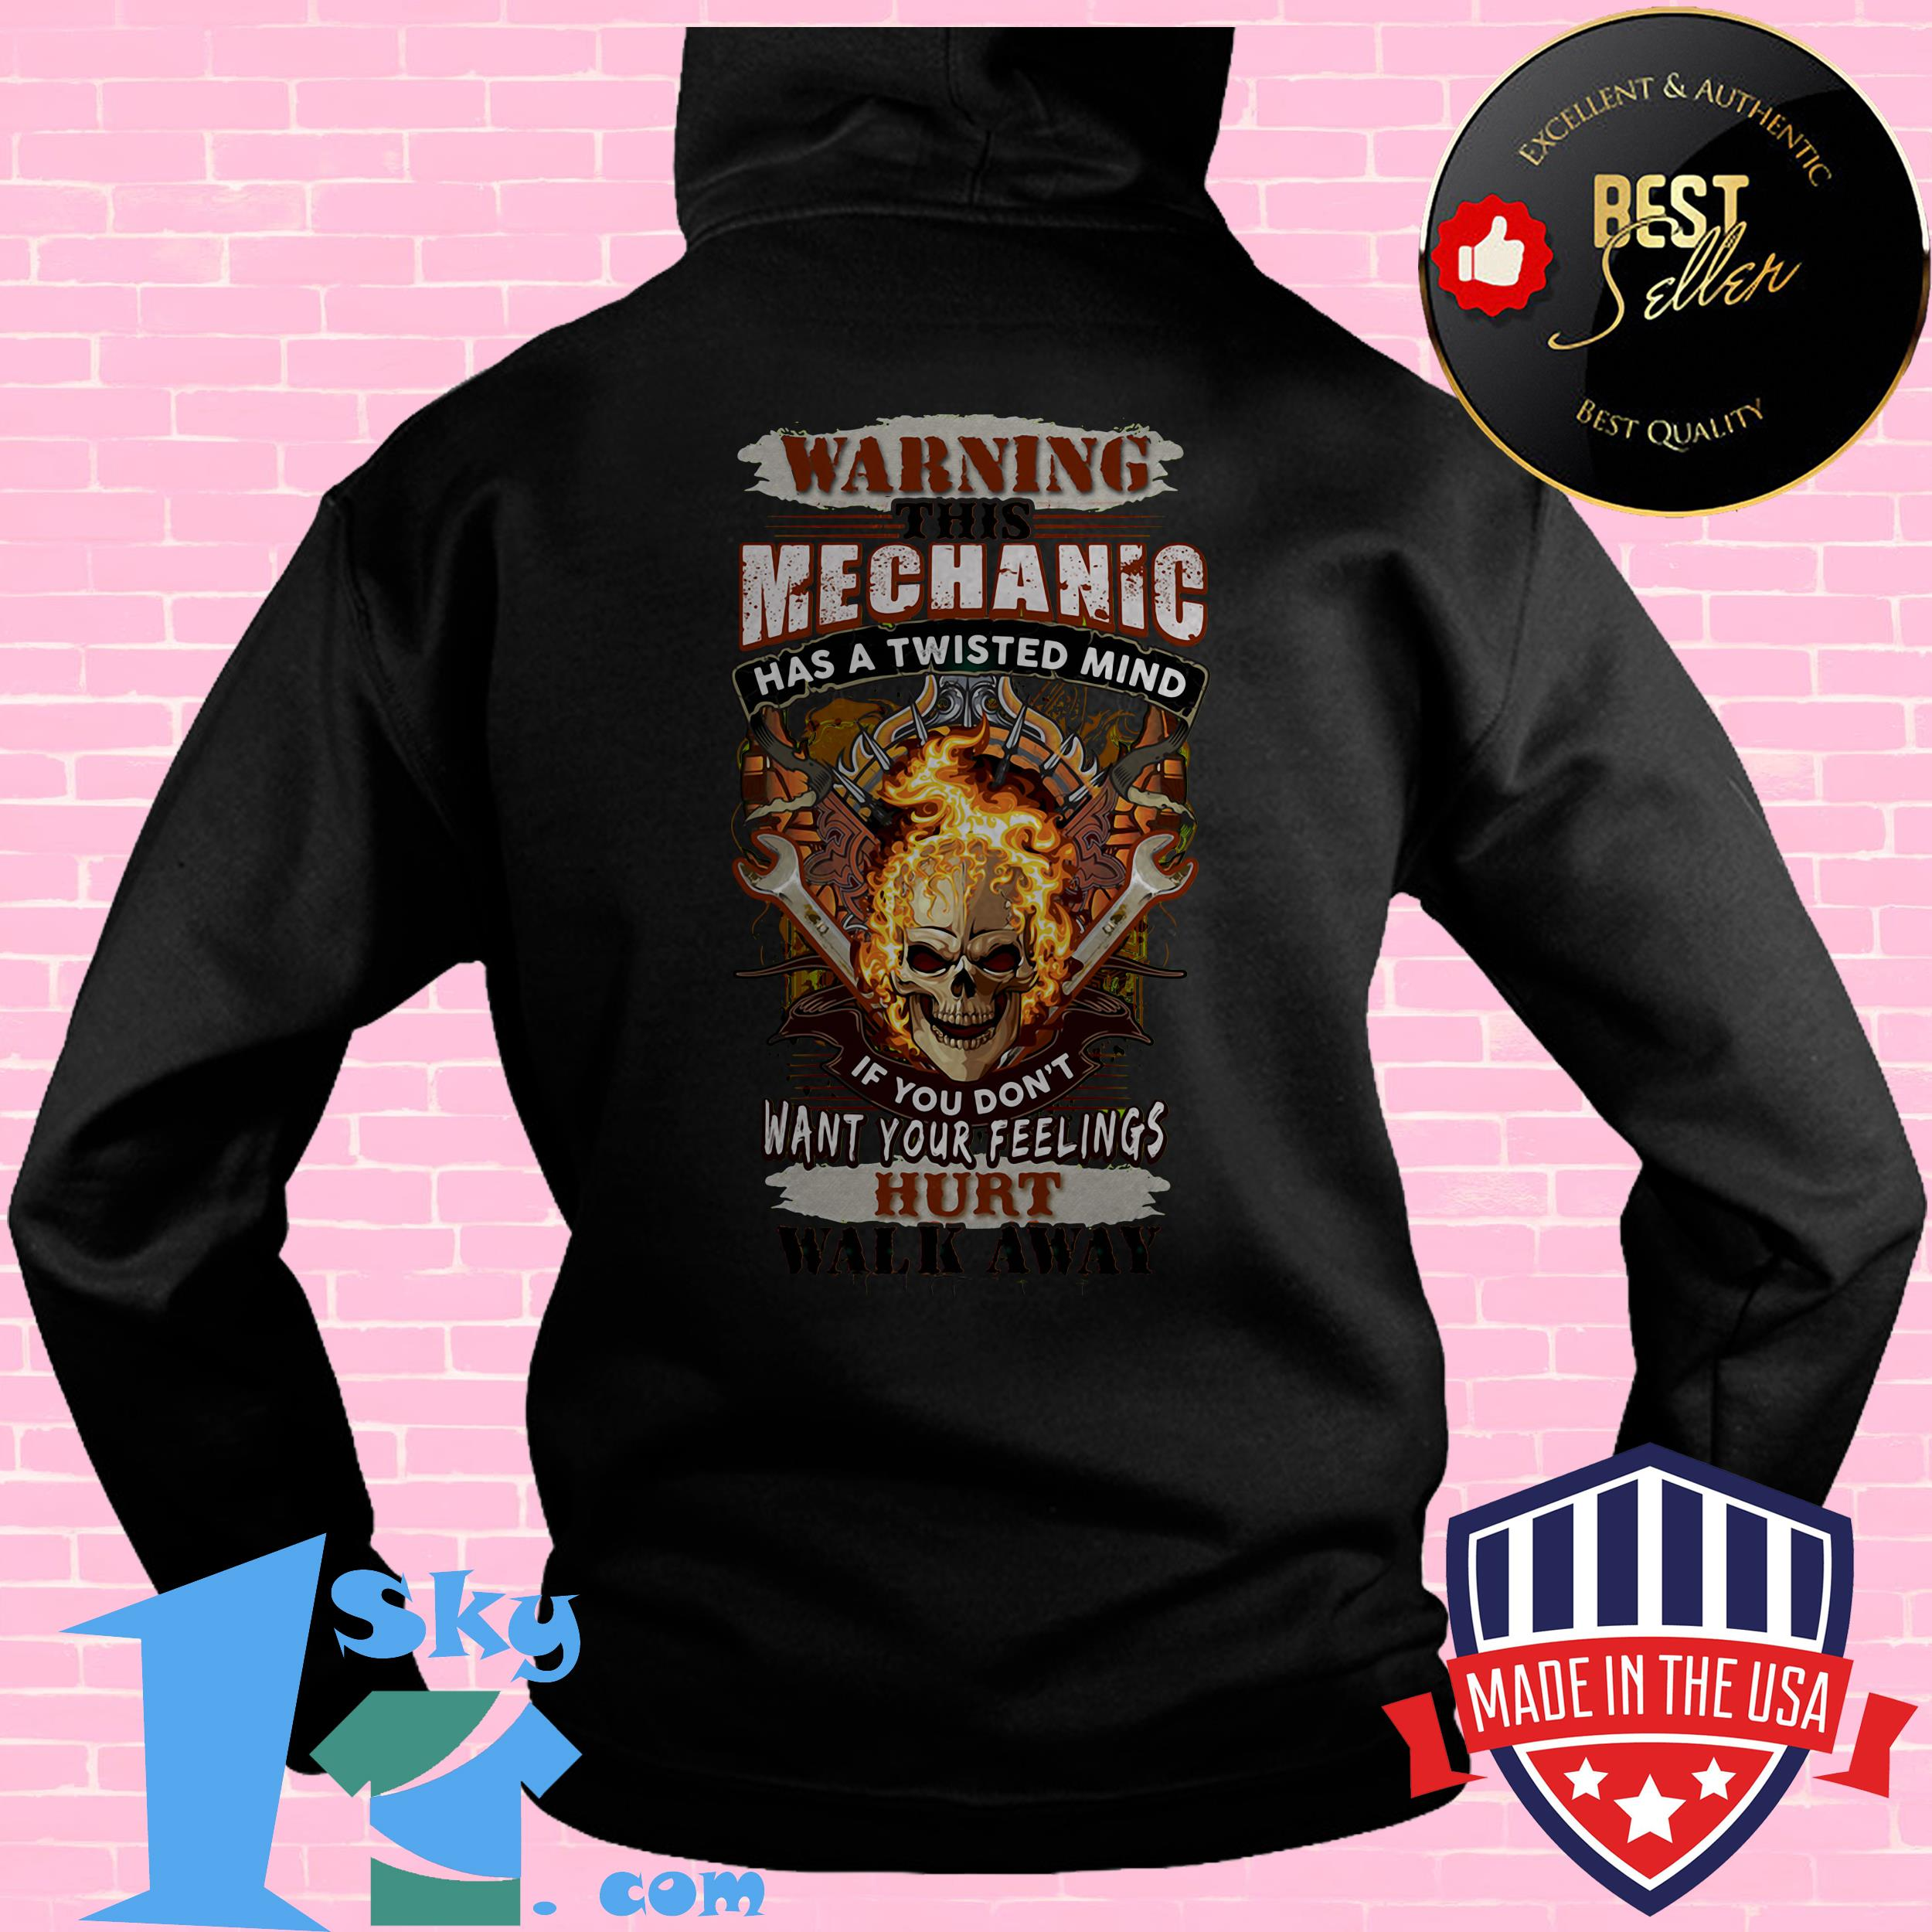 warning this mechanic has a twisted mind if you dont want your feelings hurt skull hoodie - Warning This Mechanic Has A Twisted Mind If You Don't Want Your Feelings Hurt Skull shirt